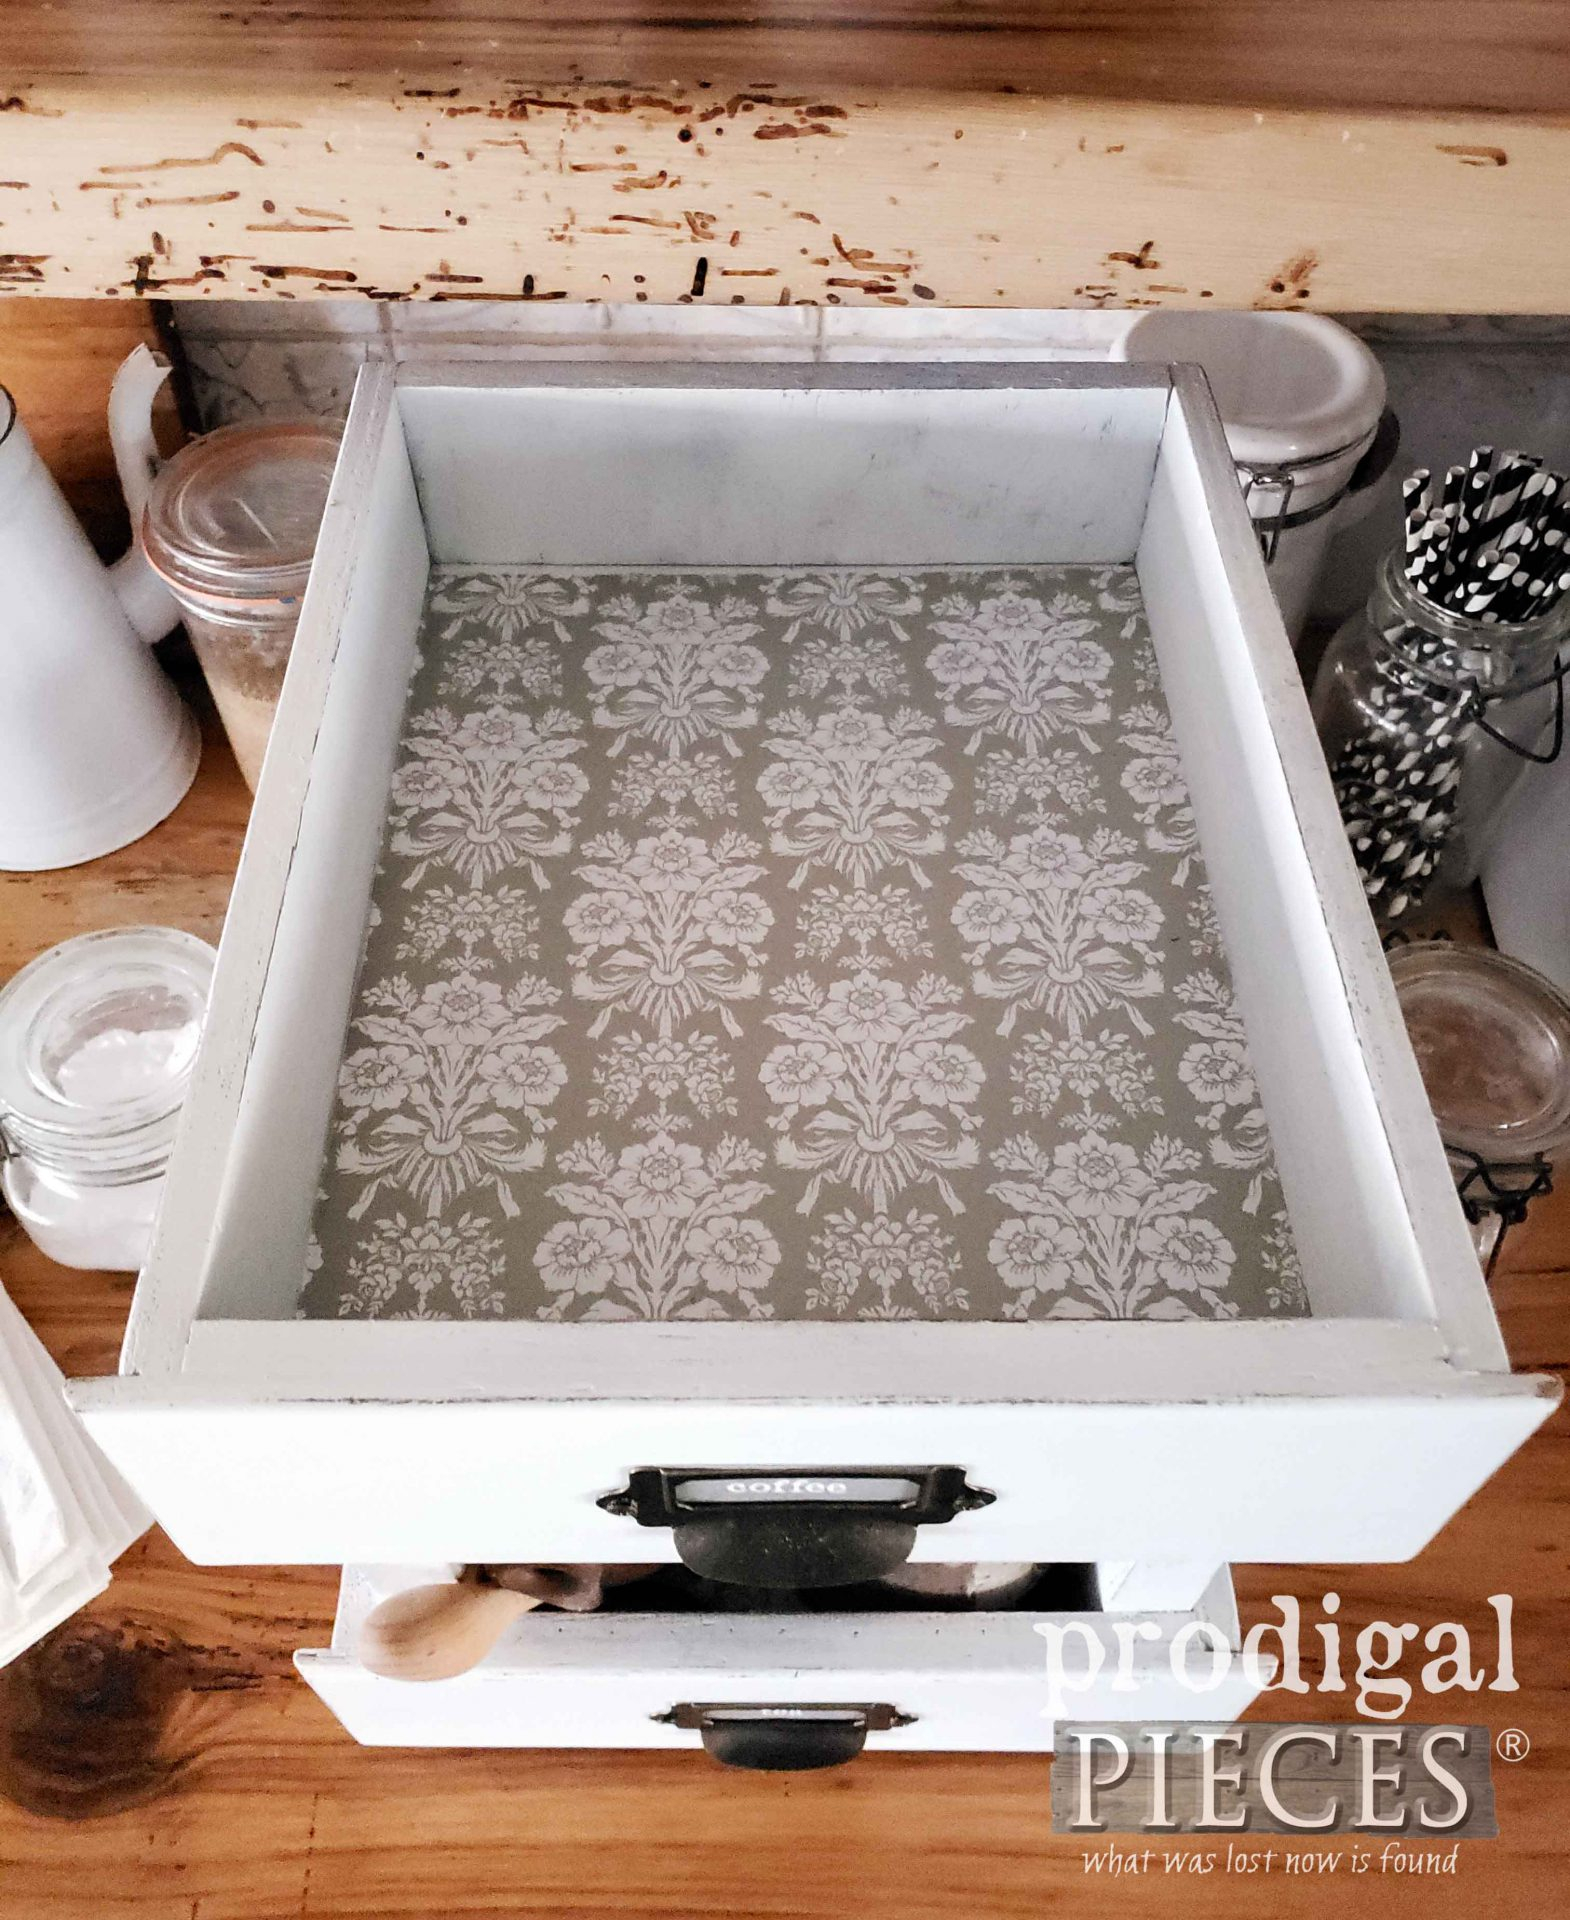 Farmhouse Style DIY Storage Created from Upcycled Drawers by Larissa of Prodigal Pieces | prodigalpieces.com #prodigalpieces #farmhouse #diy #storage #home #homedecor